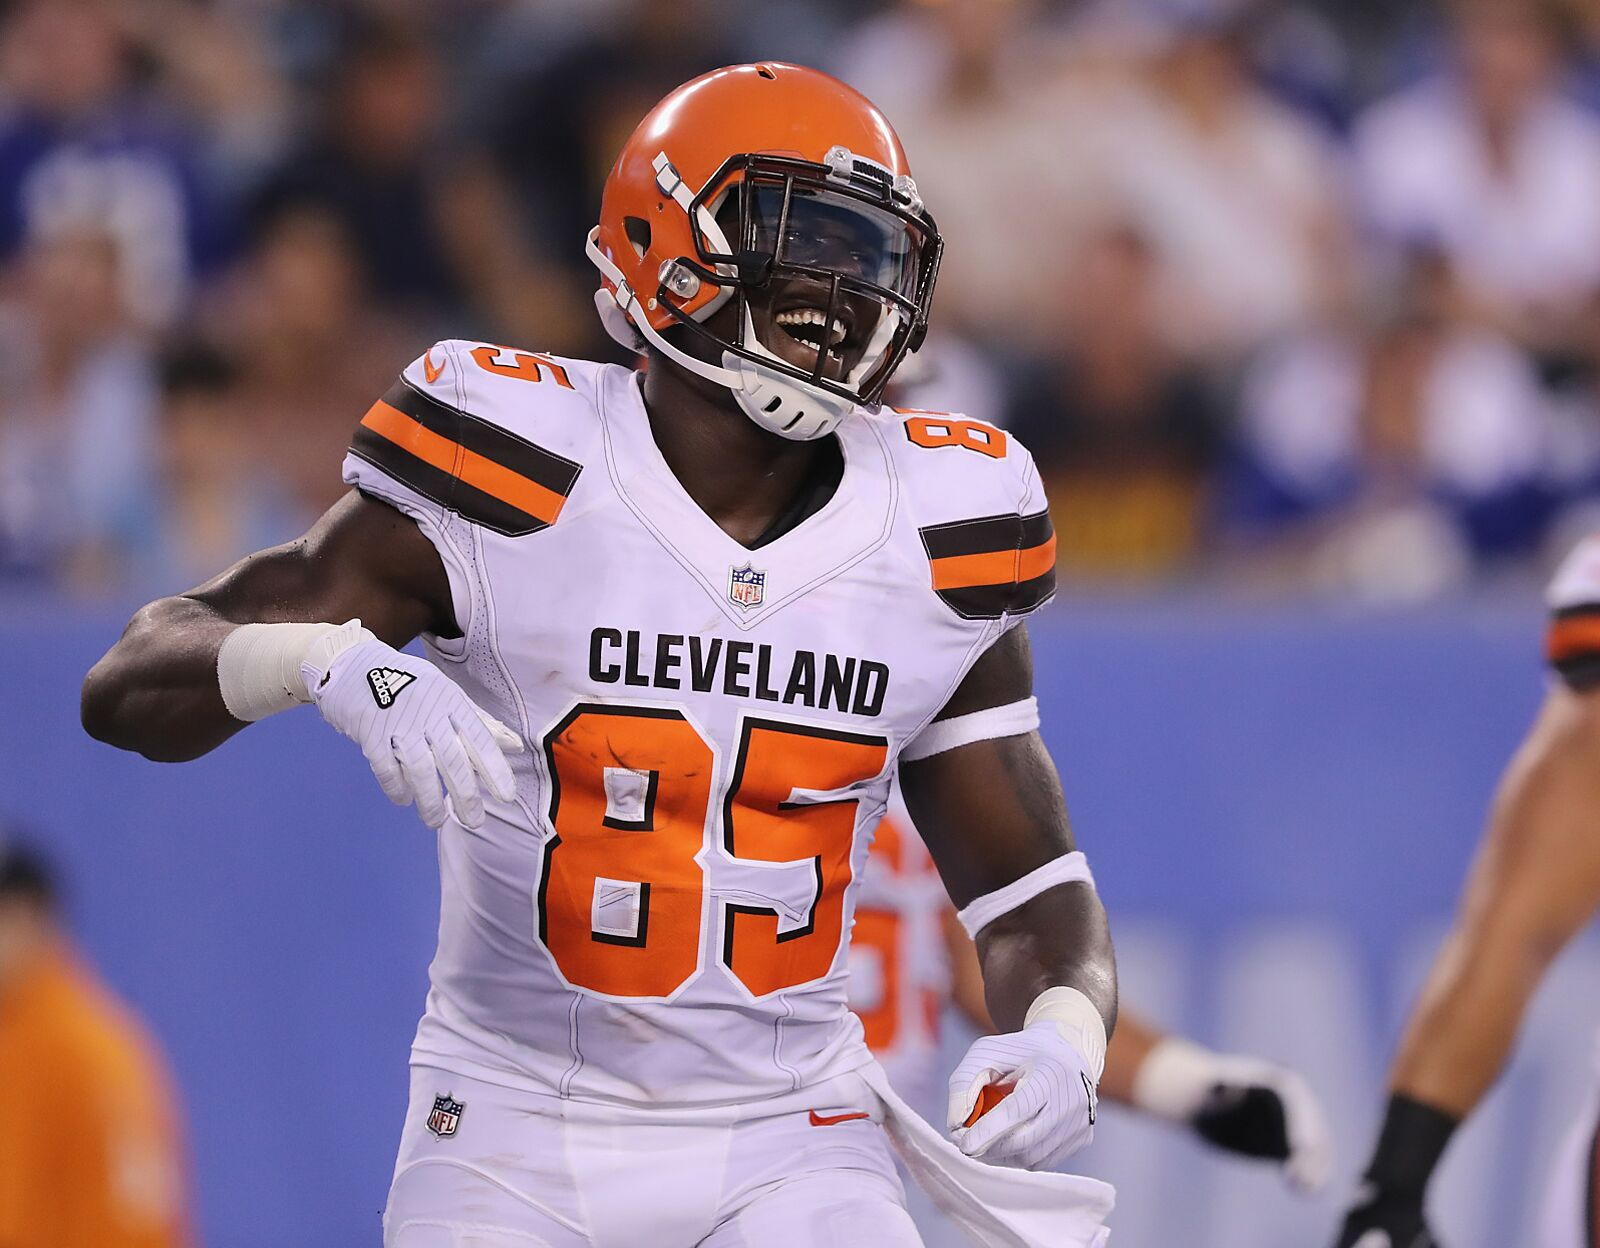 new arrival 1f32d 4bfe7 Cleveland Browns: 3 fantasy football options to consider for ...